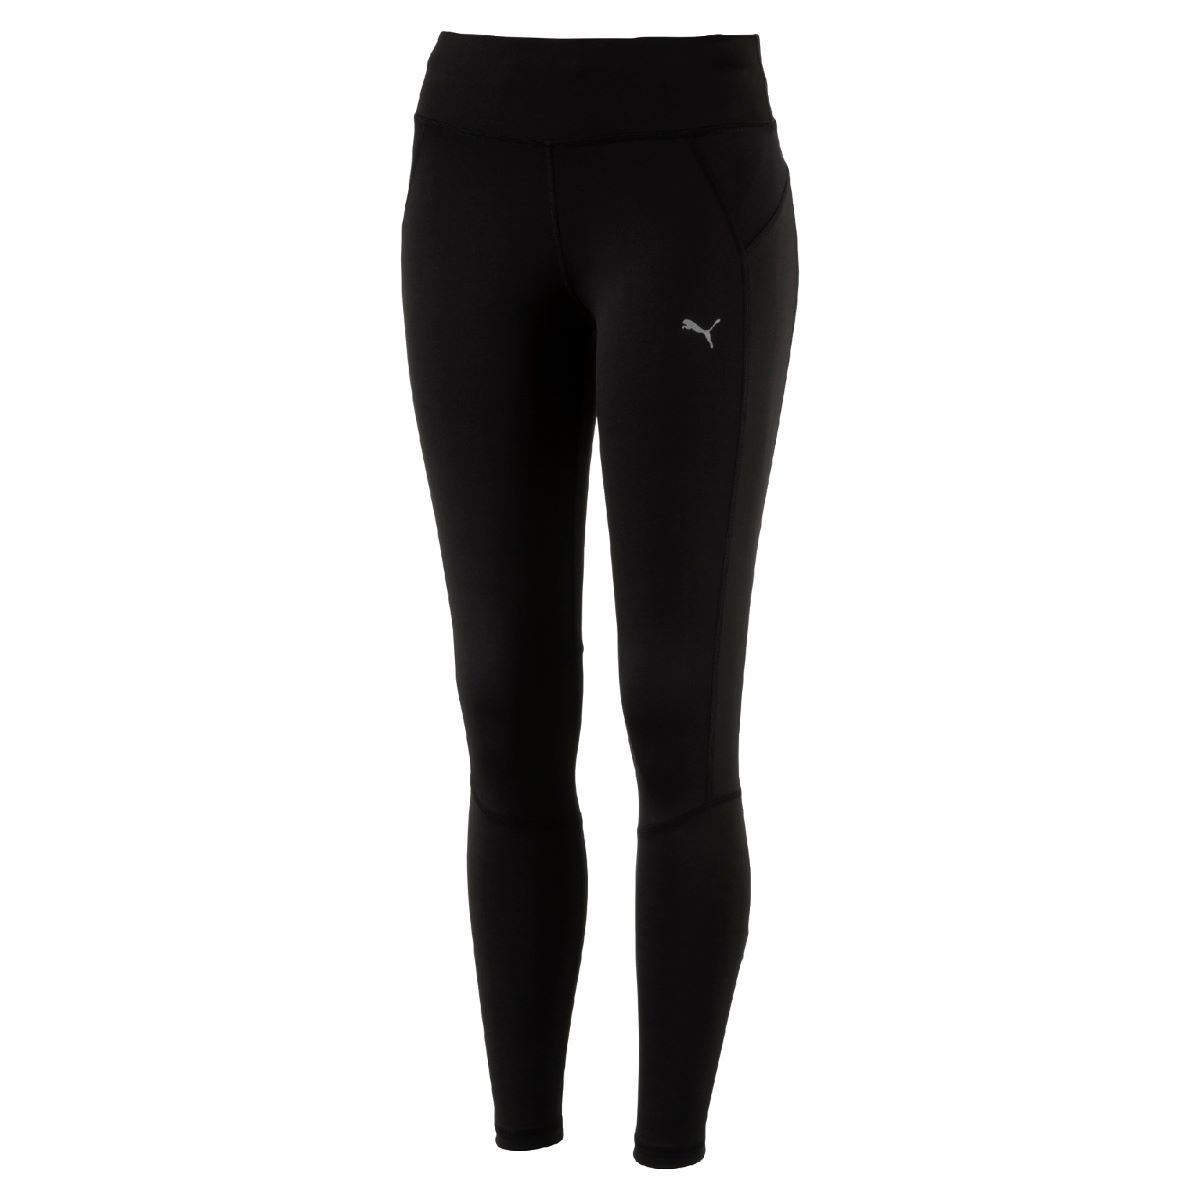 Puma Women's Speed Tight (SS17) - UK 10 Puma Black | Running Tights